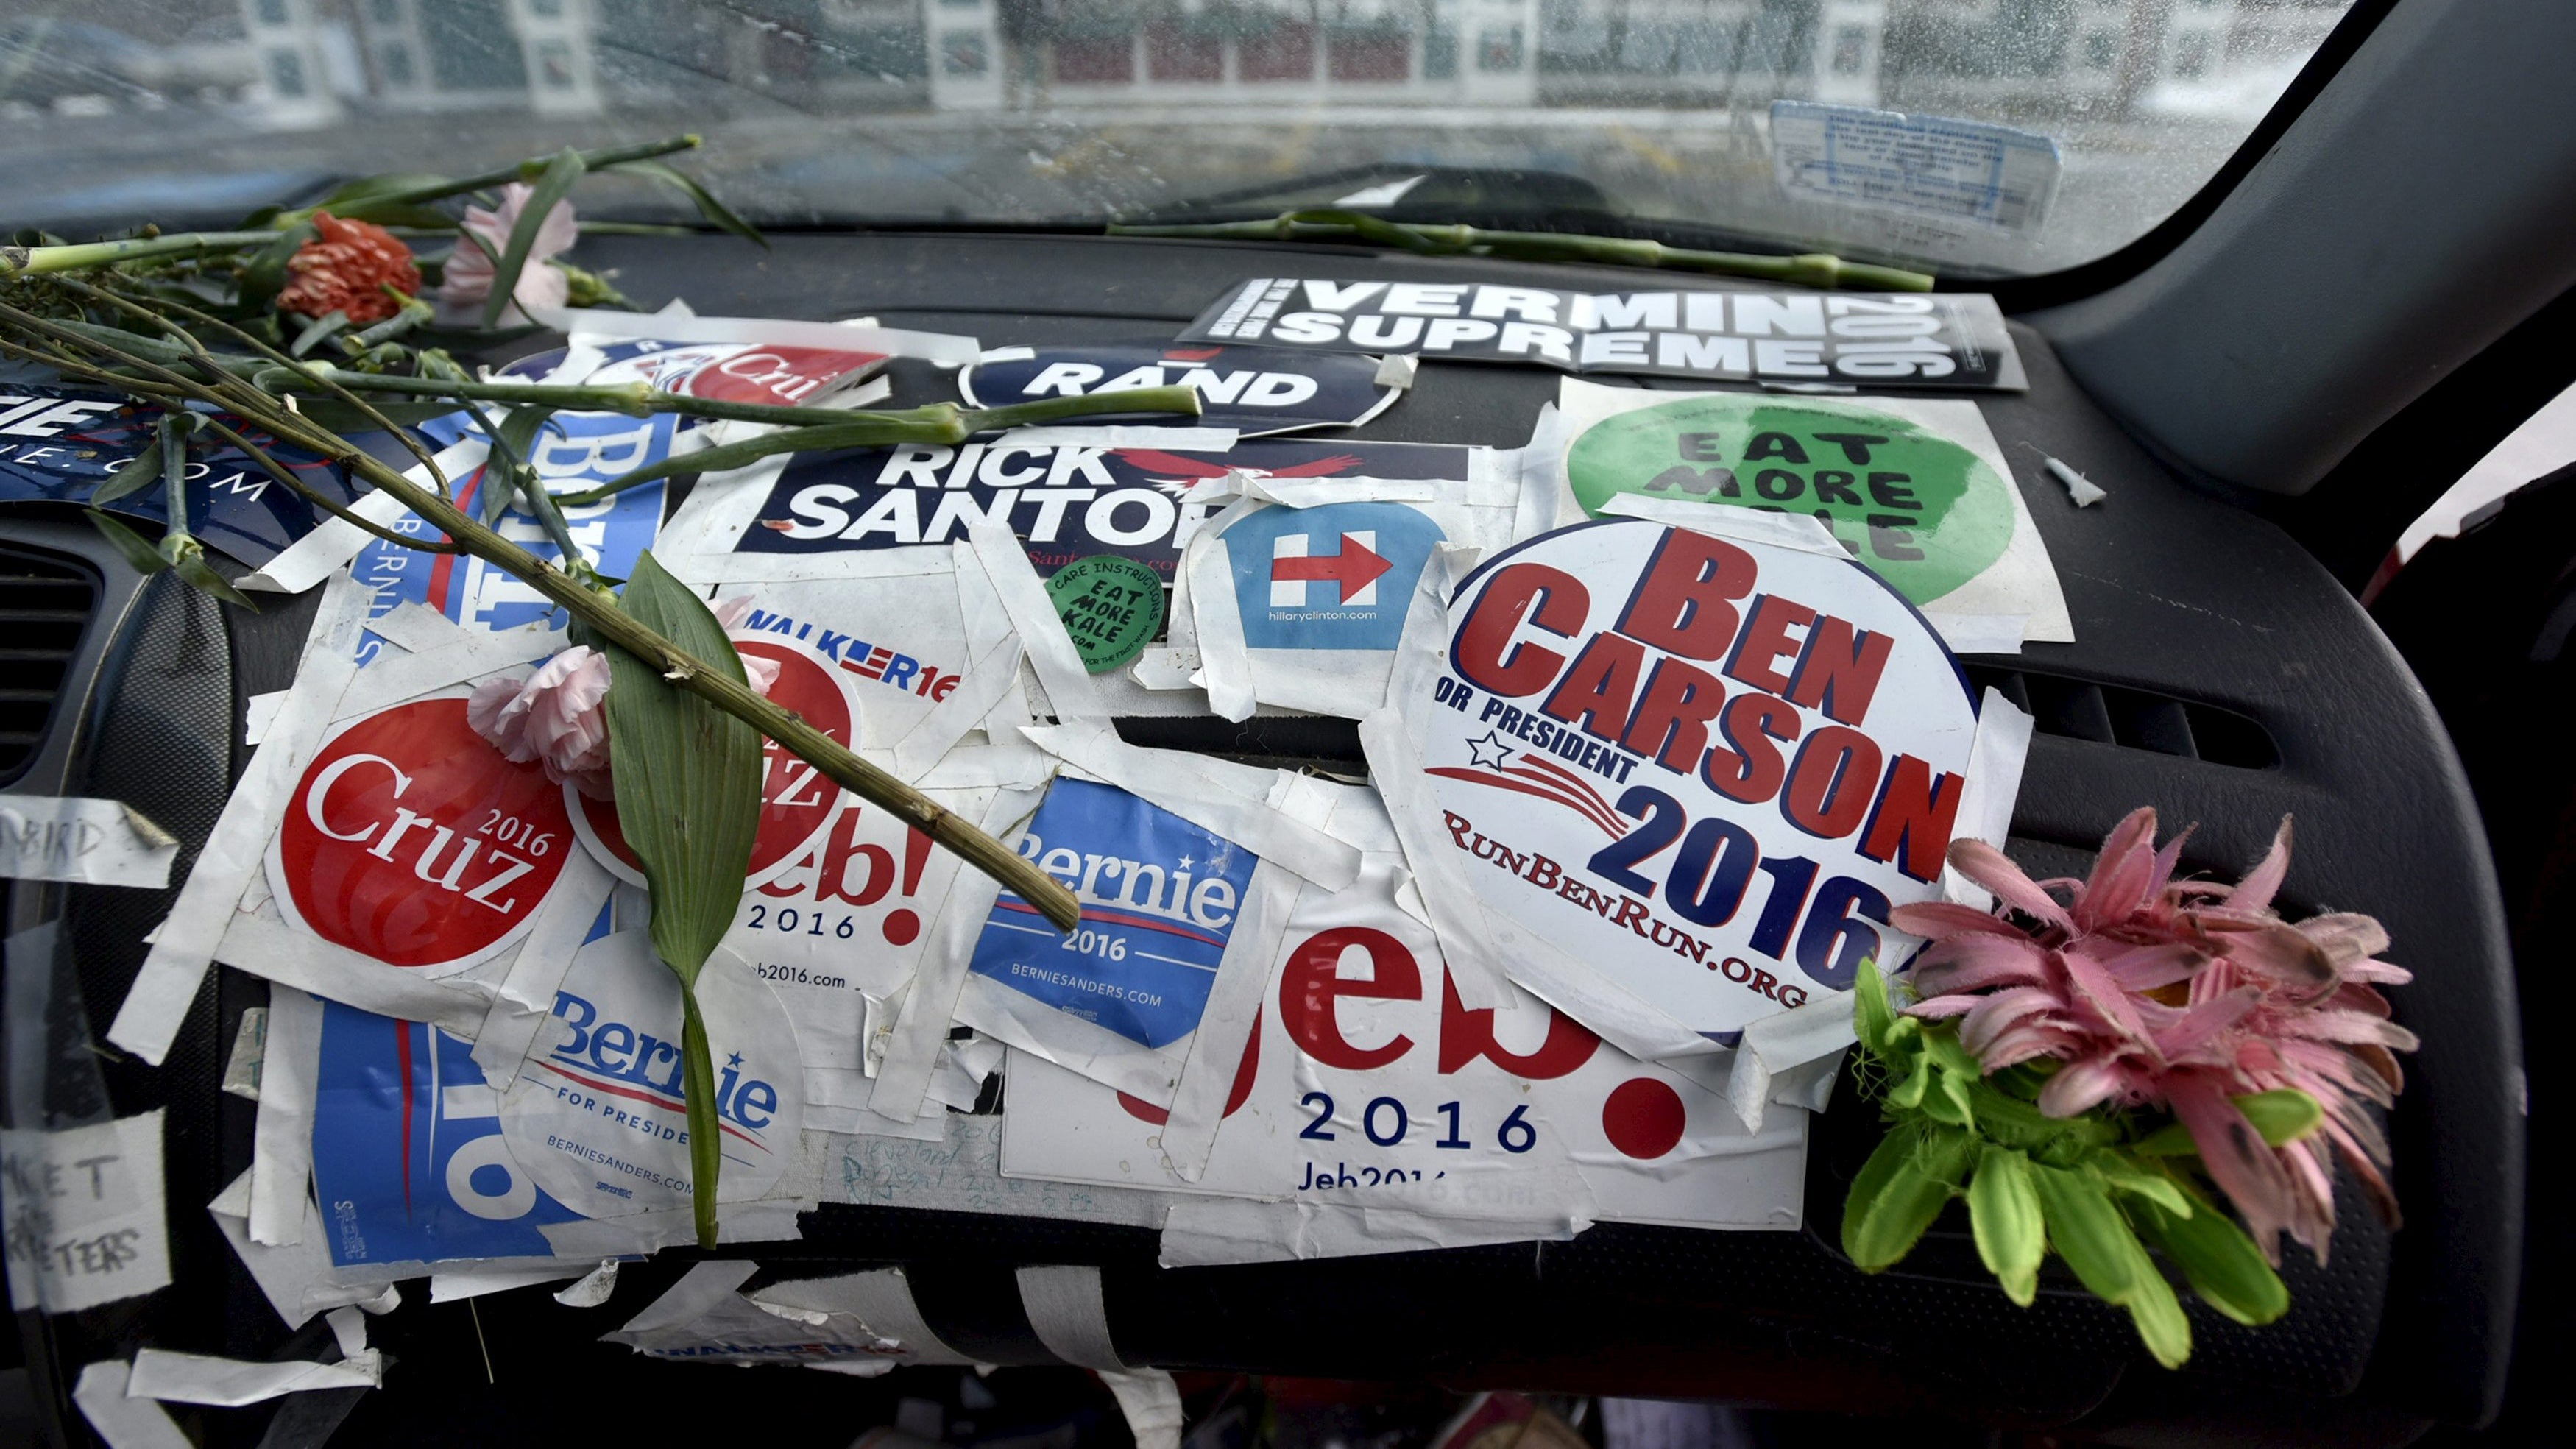 The dashboard of a car at T-Bones Great American Eatery in Derry, New Hampshire is covered in campaign stickers.